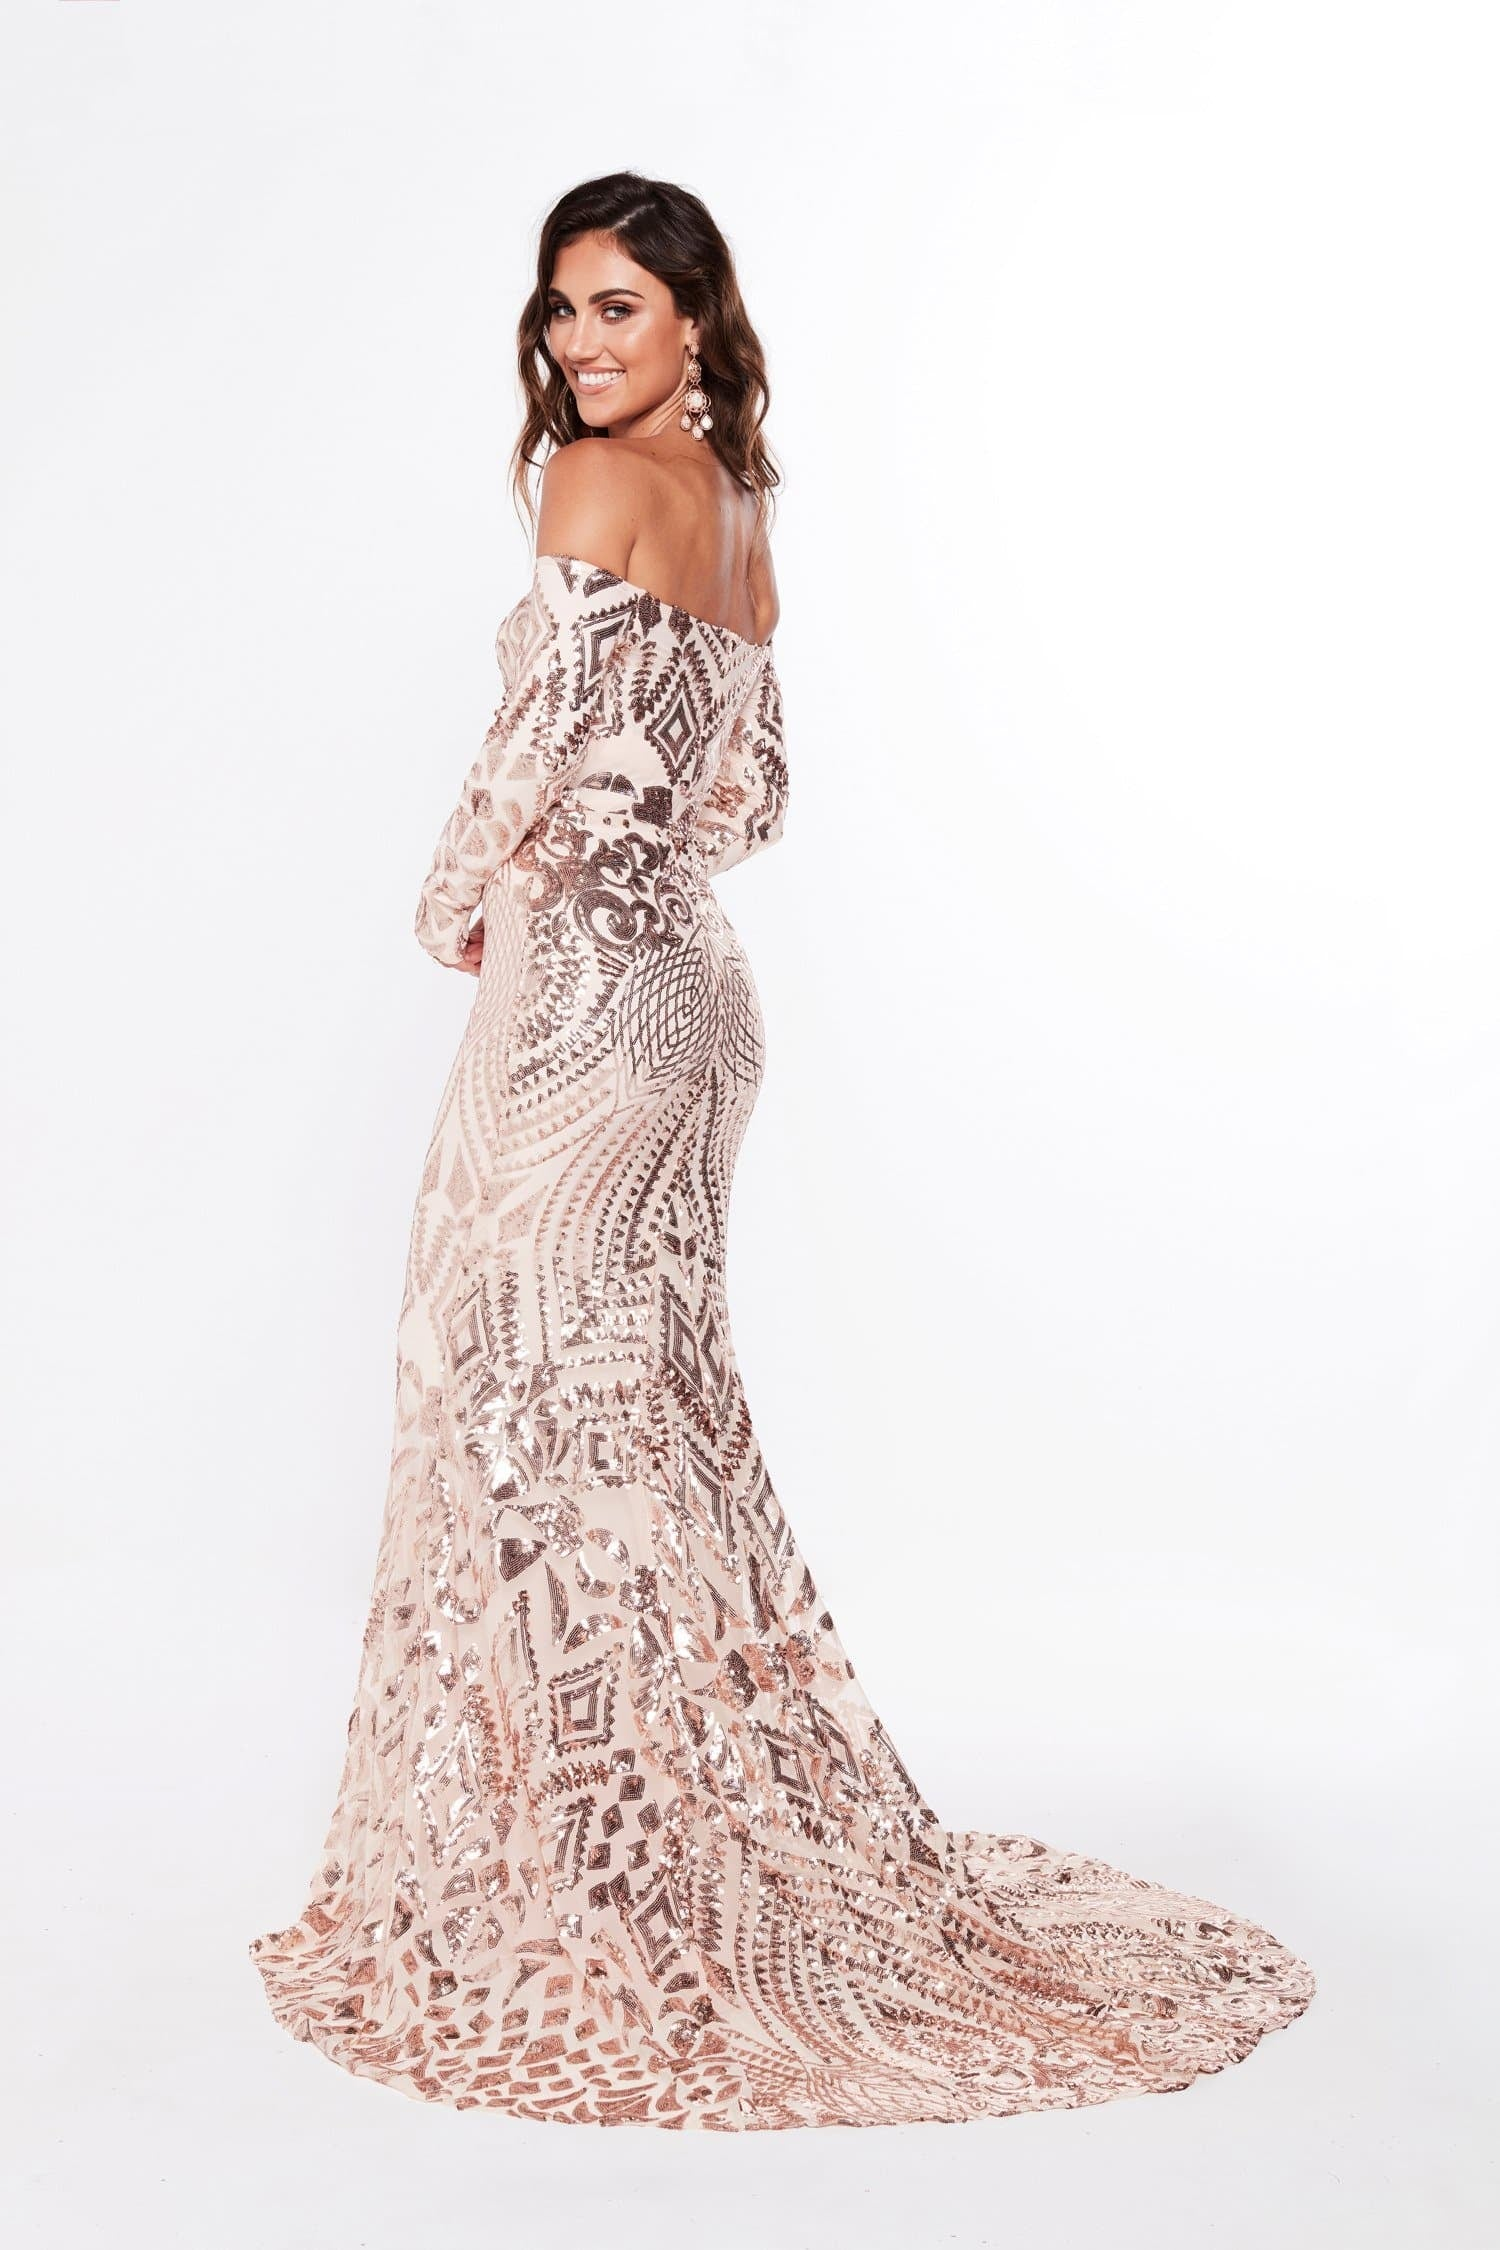 A&N Luxe Isidora Sequins Gown - Rose Gold